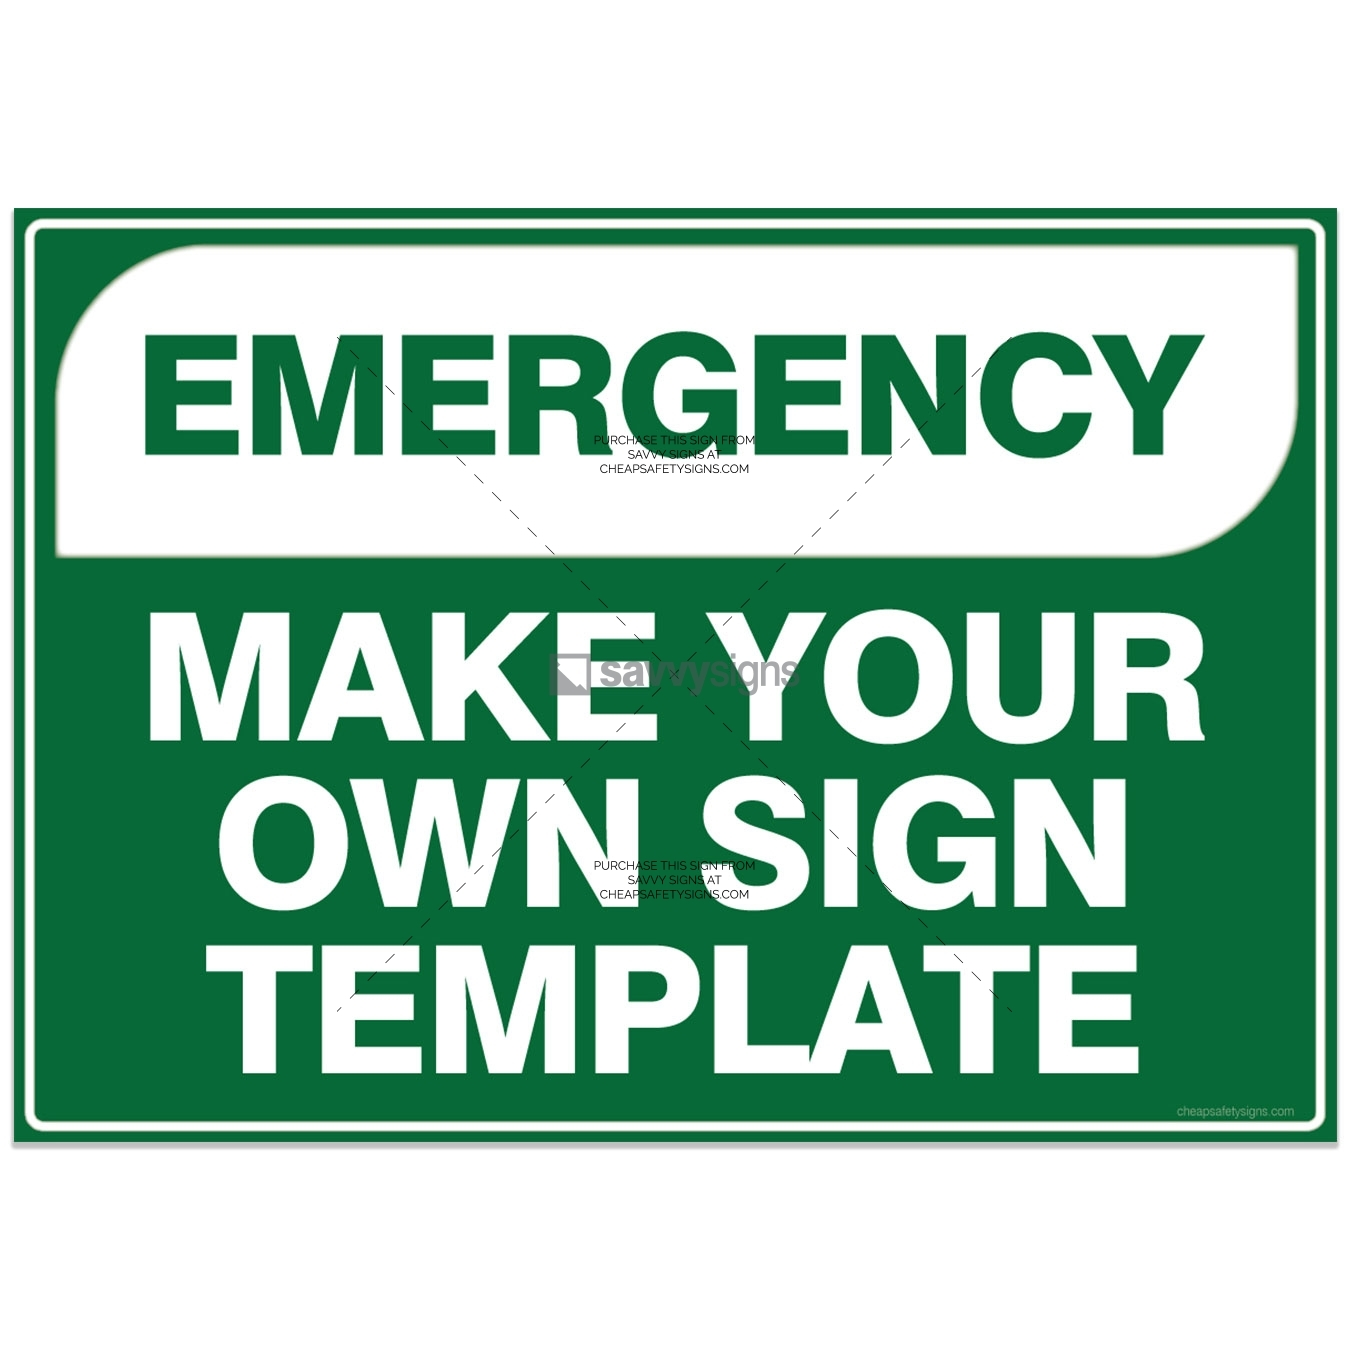 EMERGENCY Make Your Own Sign Template by Savvy Signs